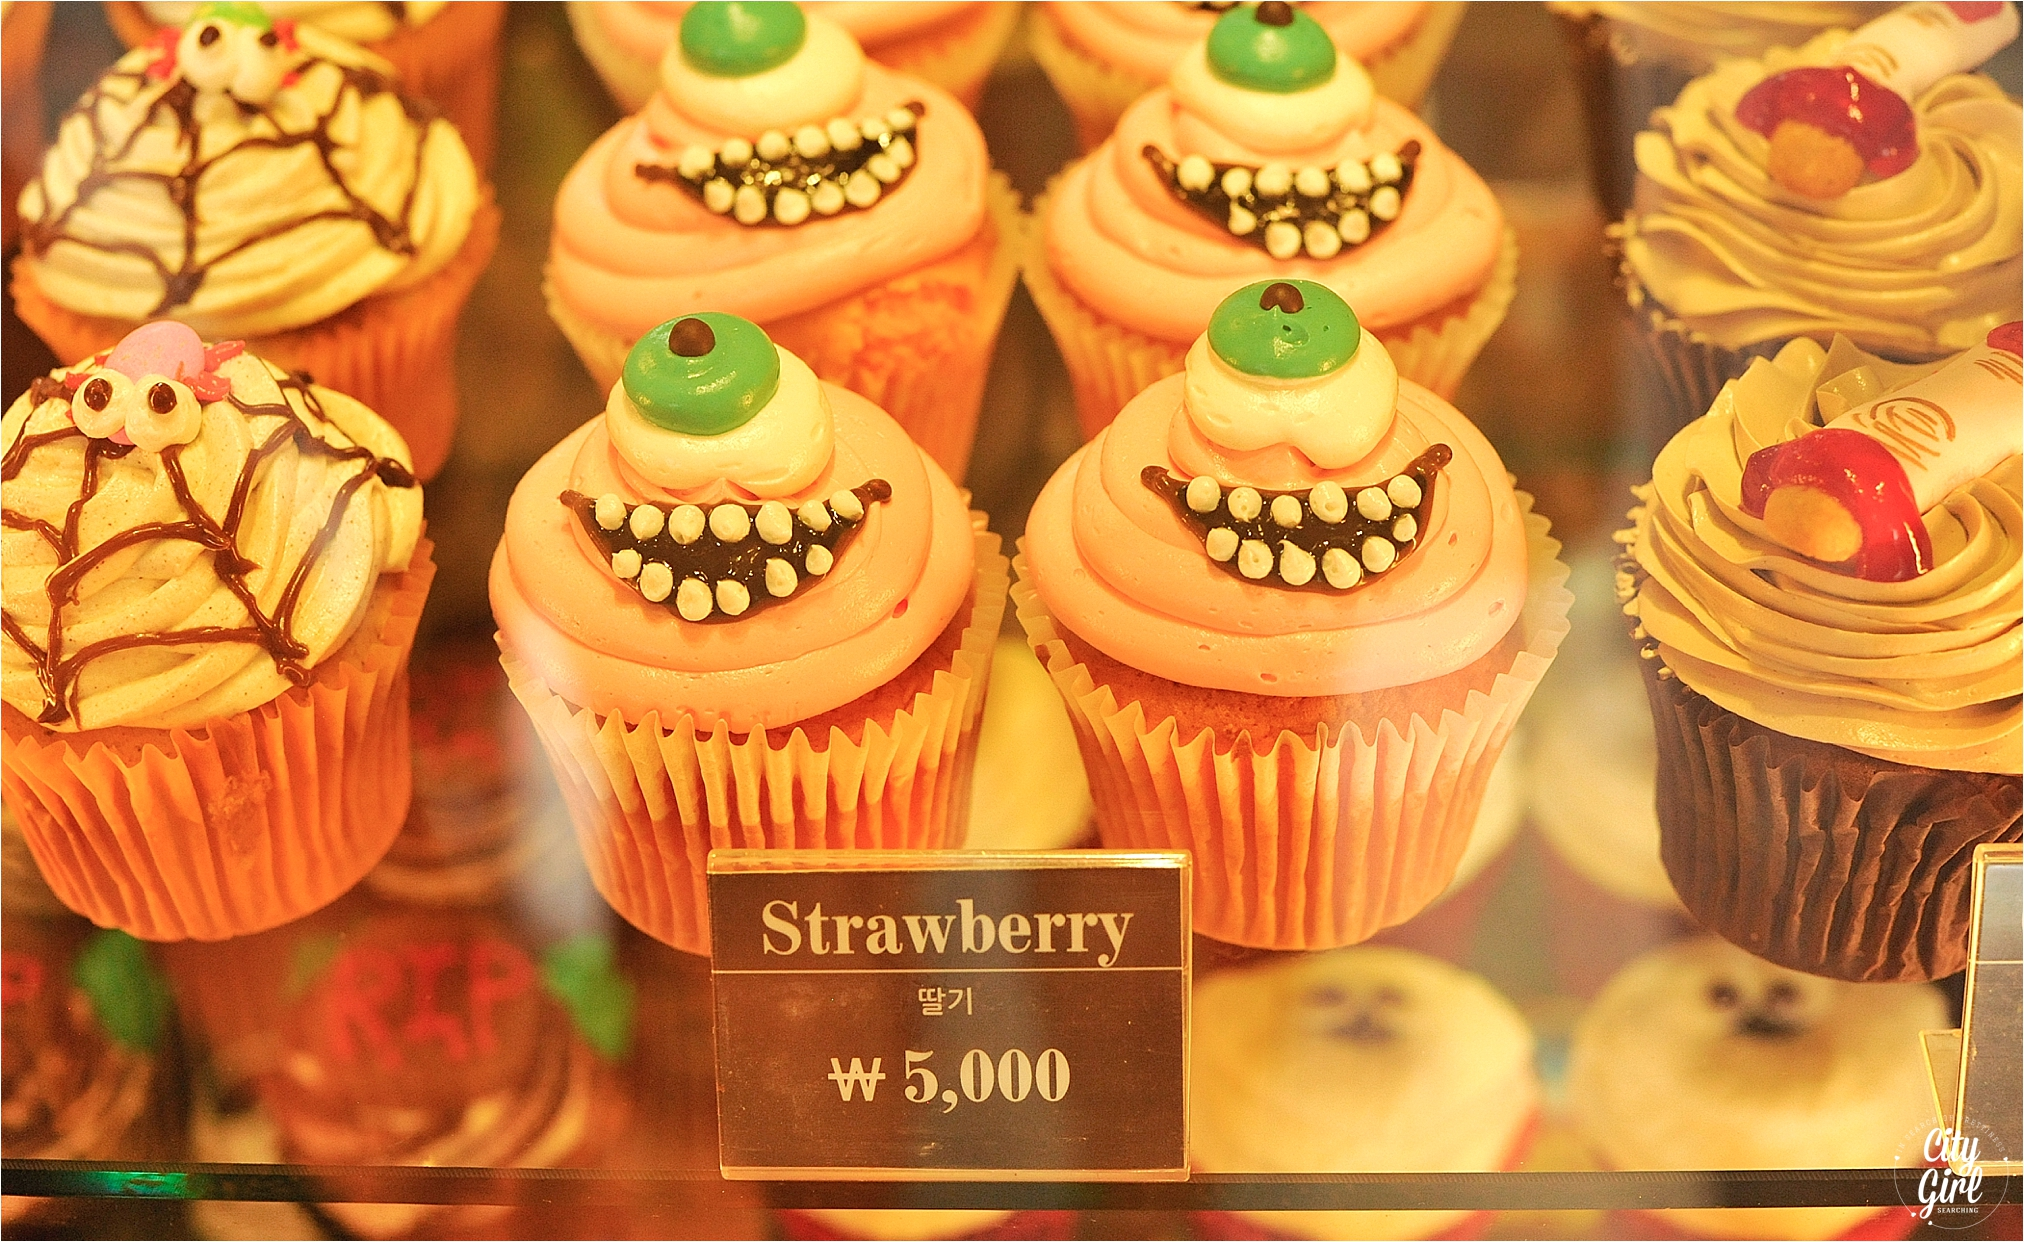 MonsterCupcakeSeoul_0003.jpg